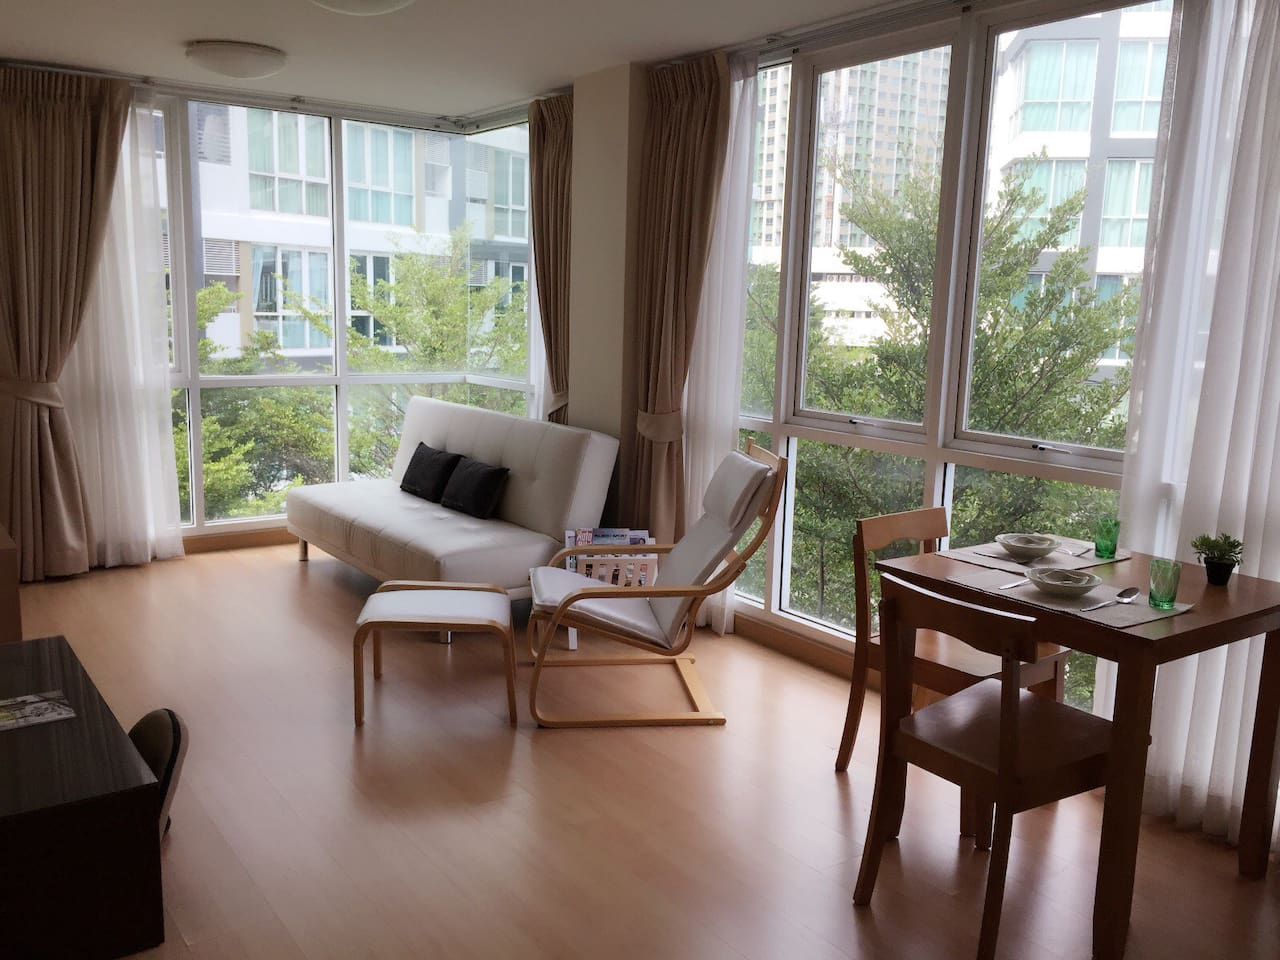 Enjoy panoramic view of garden while resting and dining of a corner room...